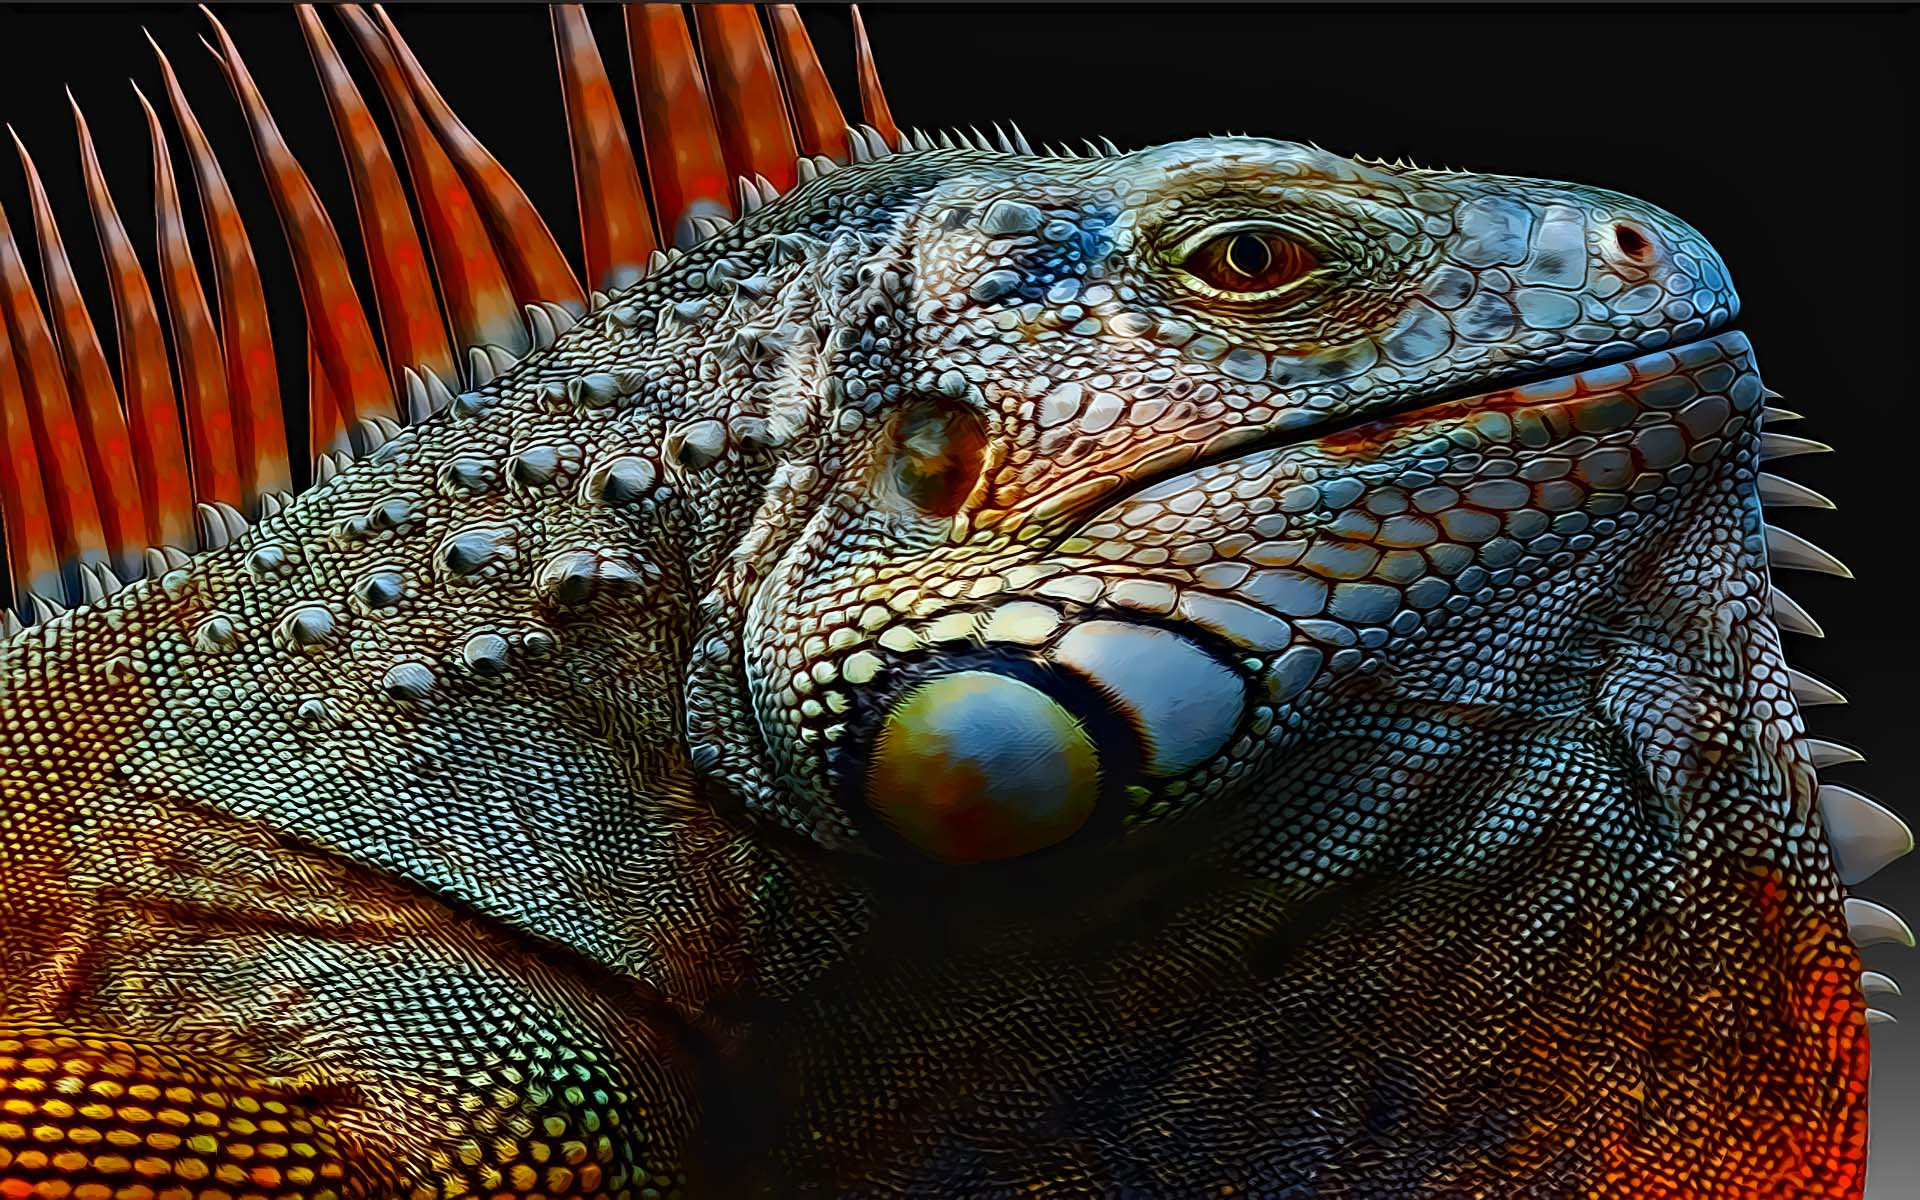 22 reptile hd wallpapers - photo #38